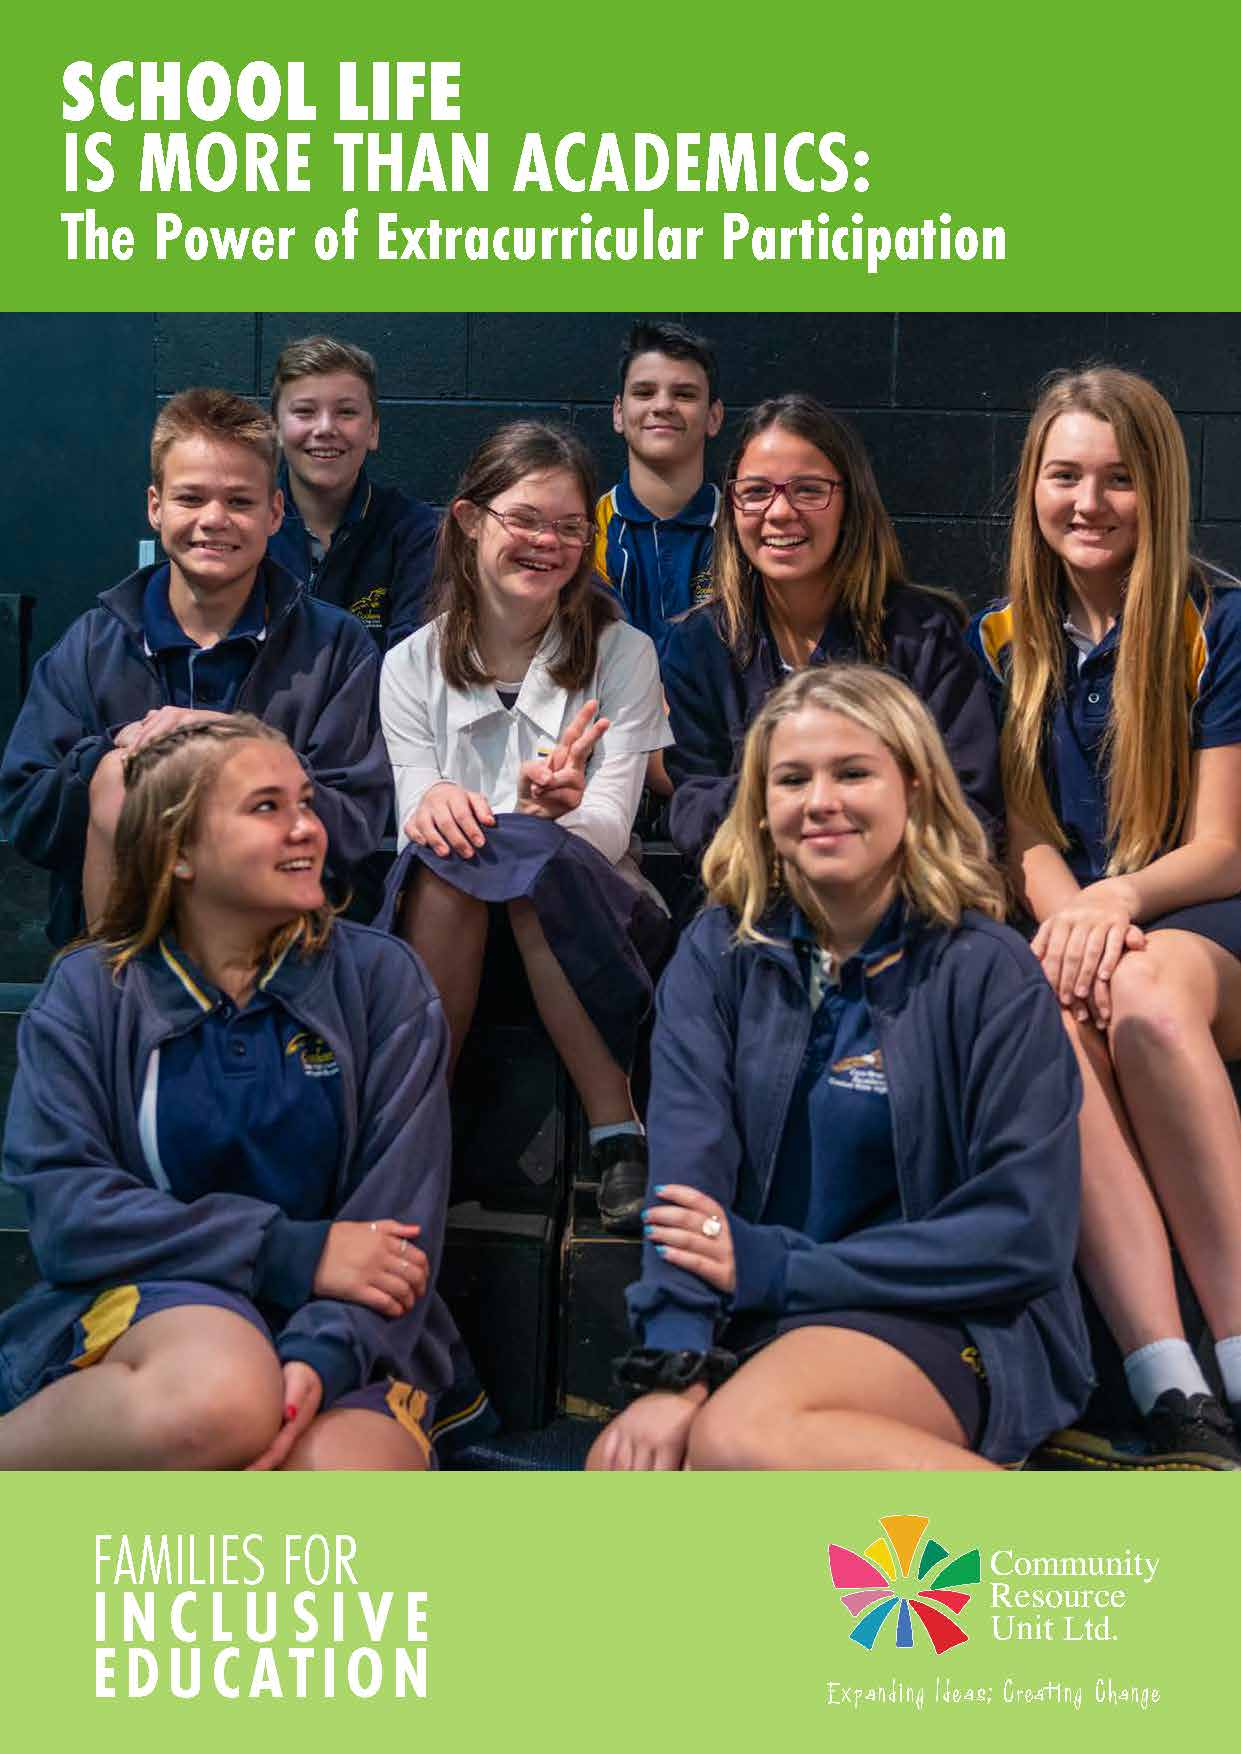 The cover of the booklet titled 'school life is more than academics. The power of extracurricular participation'. Has a group of male and female students in uniform sitting close together and smiling. One of them has a down syndrome.